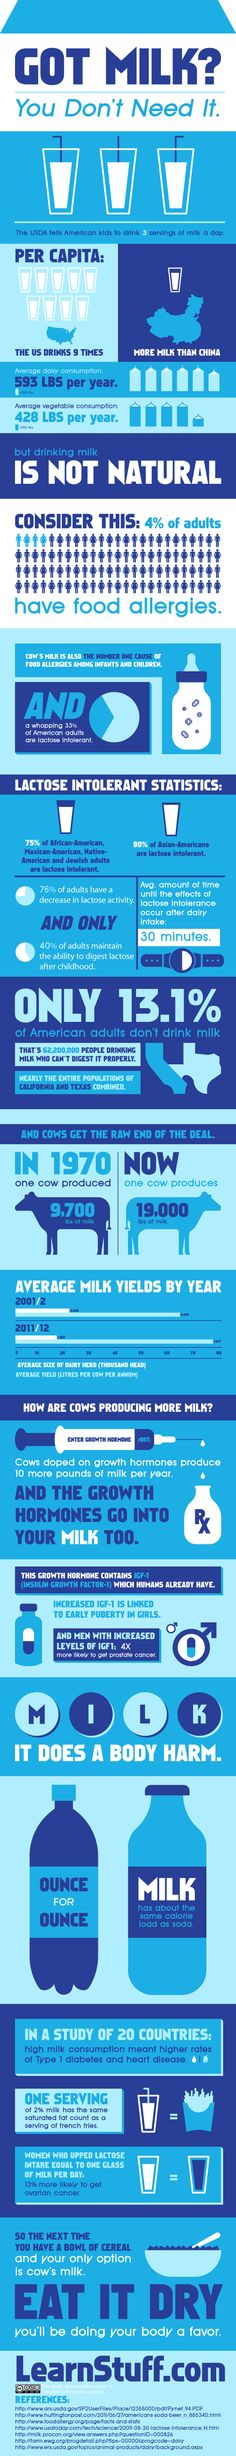 Milk Infographic: wish people would educate themselves on what they put in their bodies